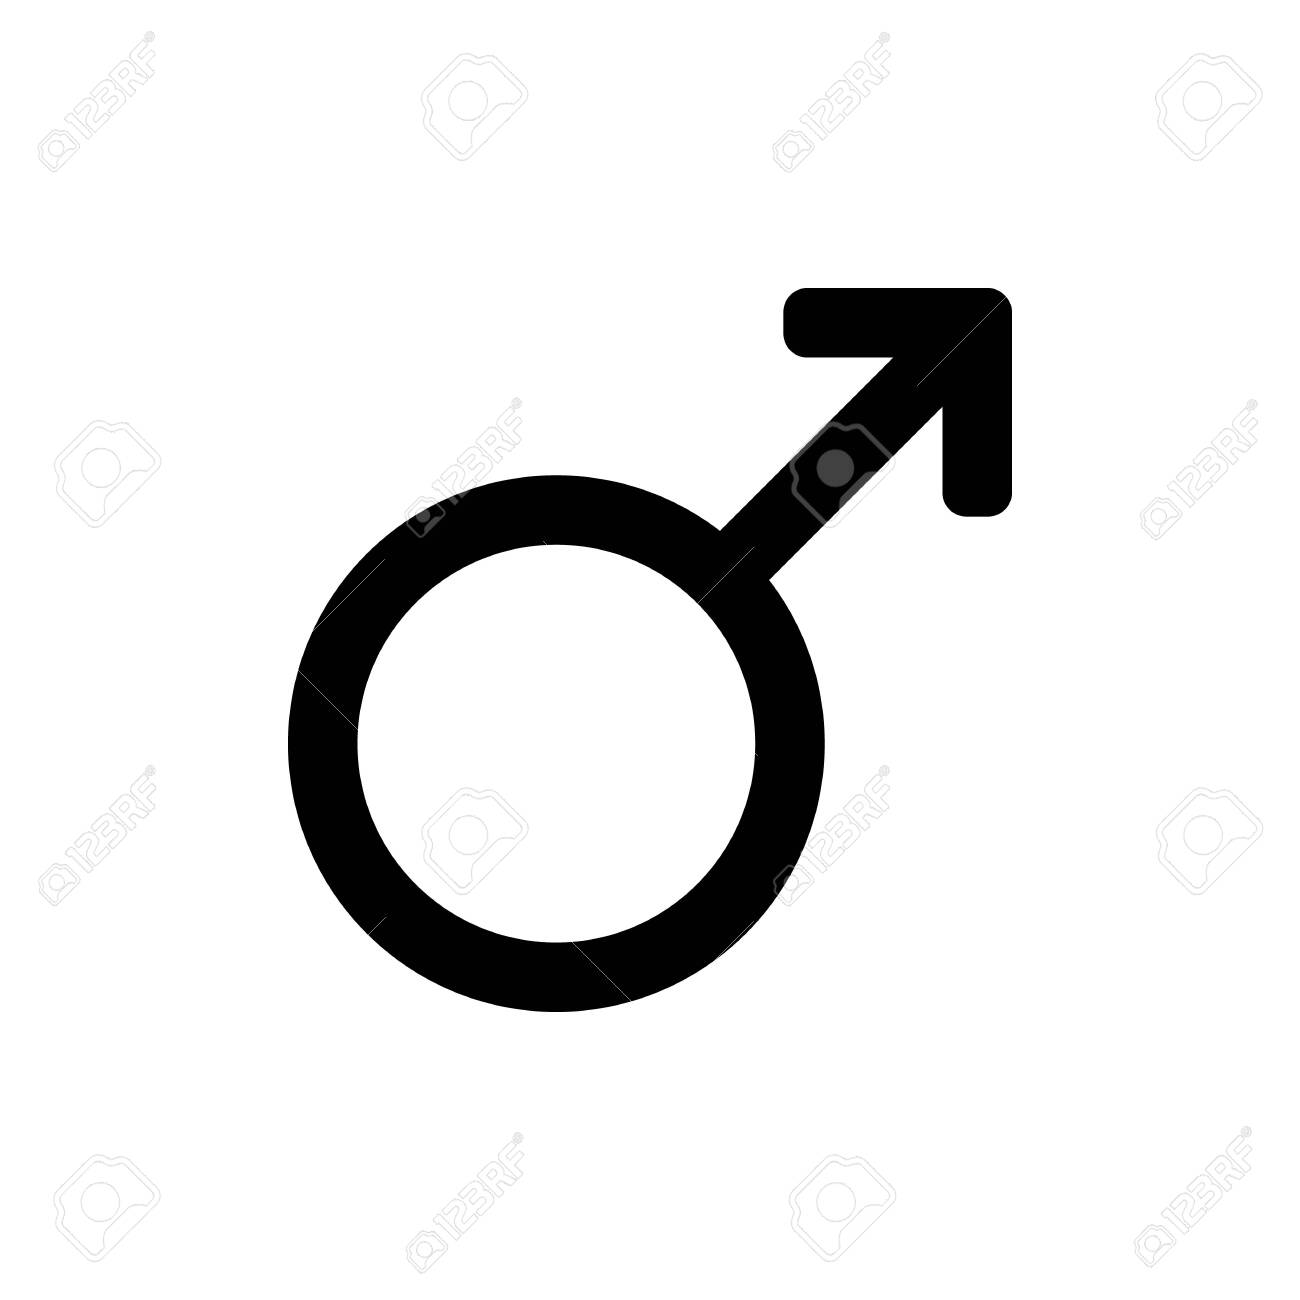 male sex icon gender symbol black mars sign on a white background royalty free cliparts vectors and stock illustration image 129199548 male sex icon gender symbol black mars sign on a white background